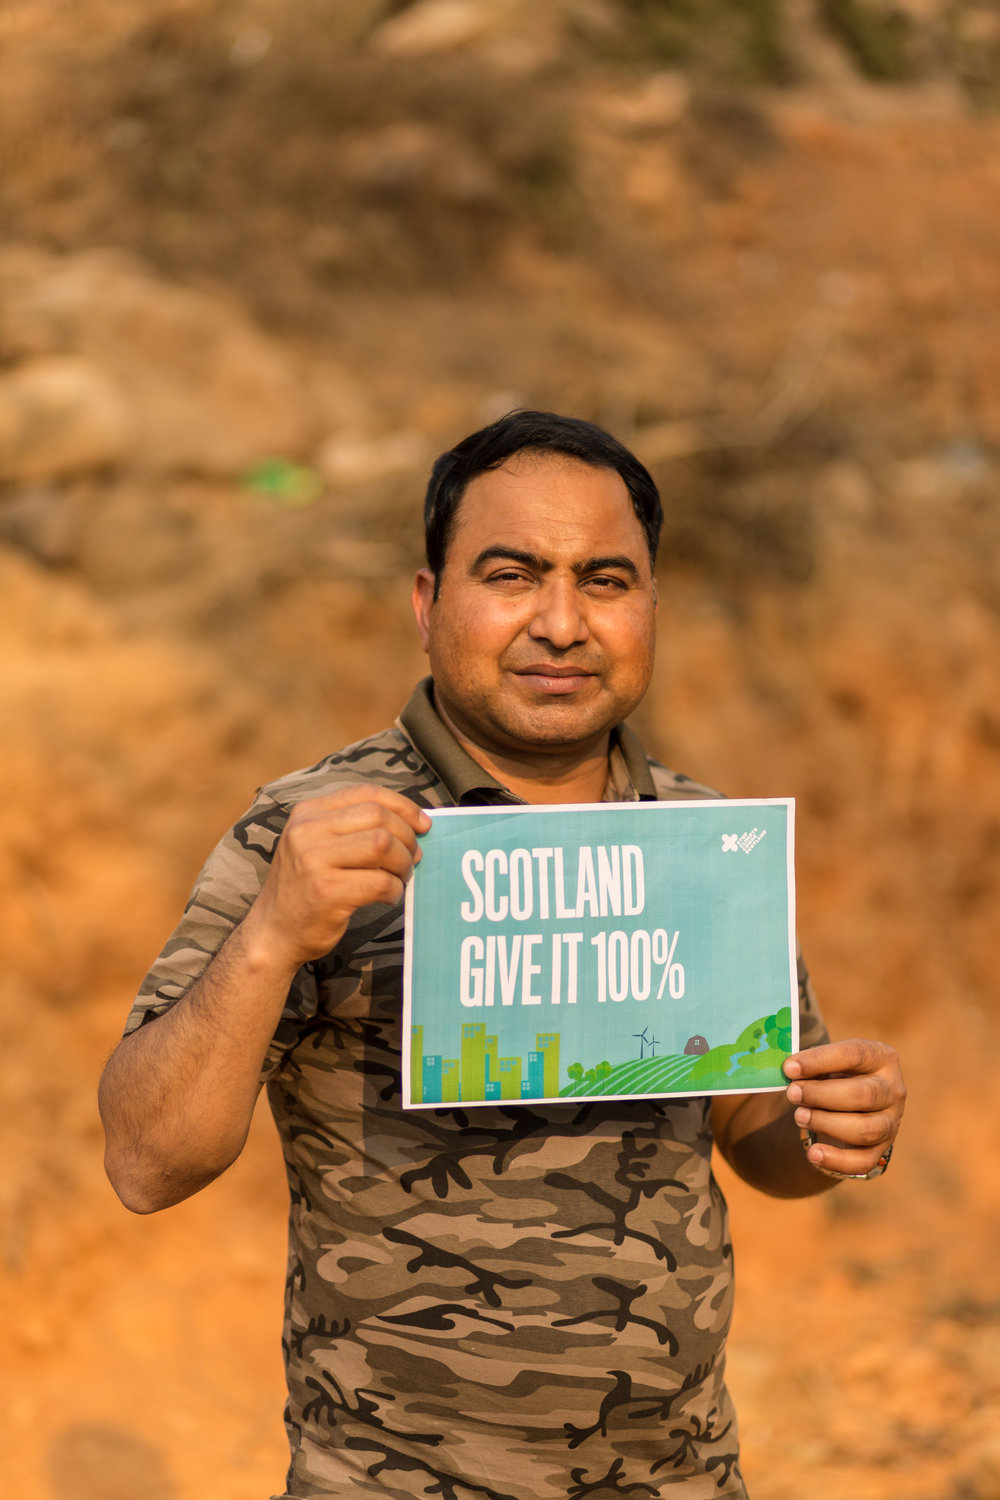 """""""TODAY NEPALESE COMMUNITIES ARE FACING THE VERY WORSE IMPACTS OF CLIMATE CHANGE, AMBITIOUS CLIMATE ACTION IN SCOTLAND WILL HELP ADDRESS THE CHALLENGES WE FACE NOW AND IN THE FUTURE""""    BINOD GHIMIRE, NEPAL     Photograpgy by Chris Hoskins, Tearfund"""